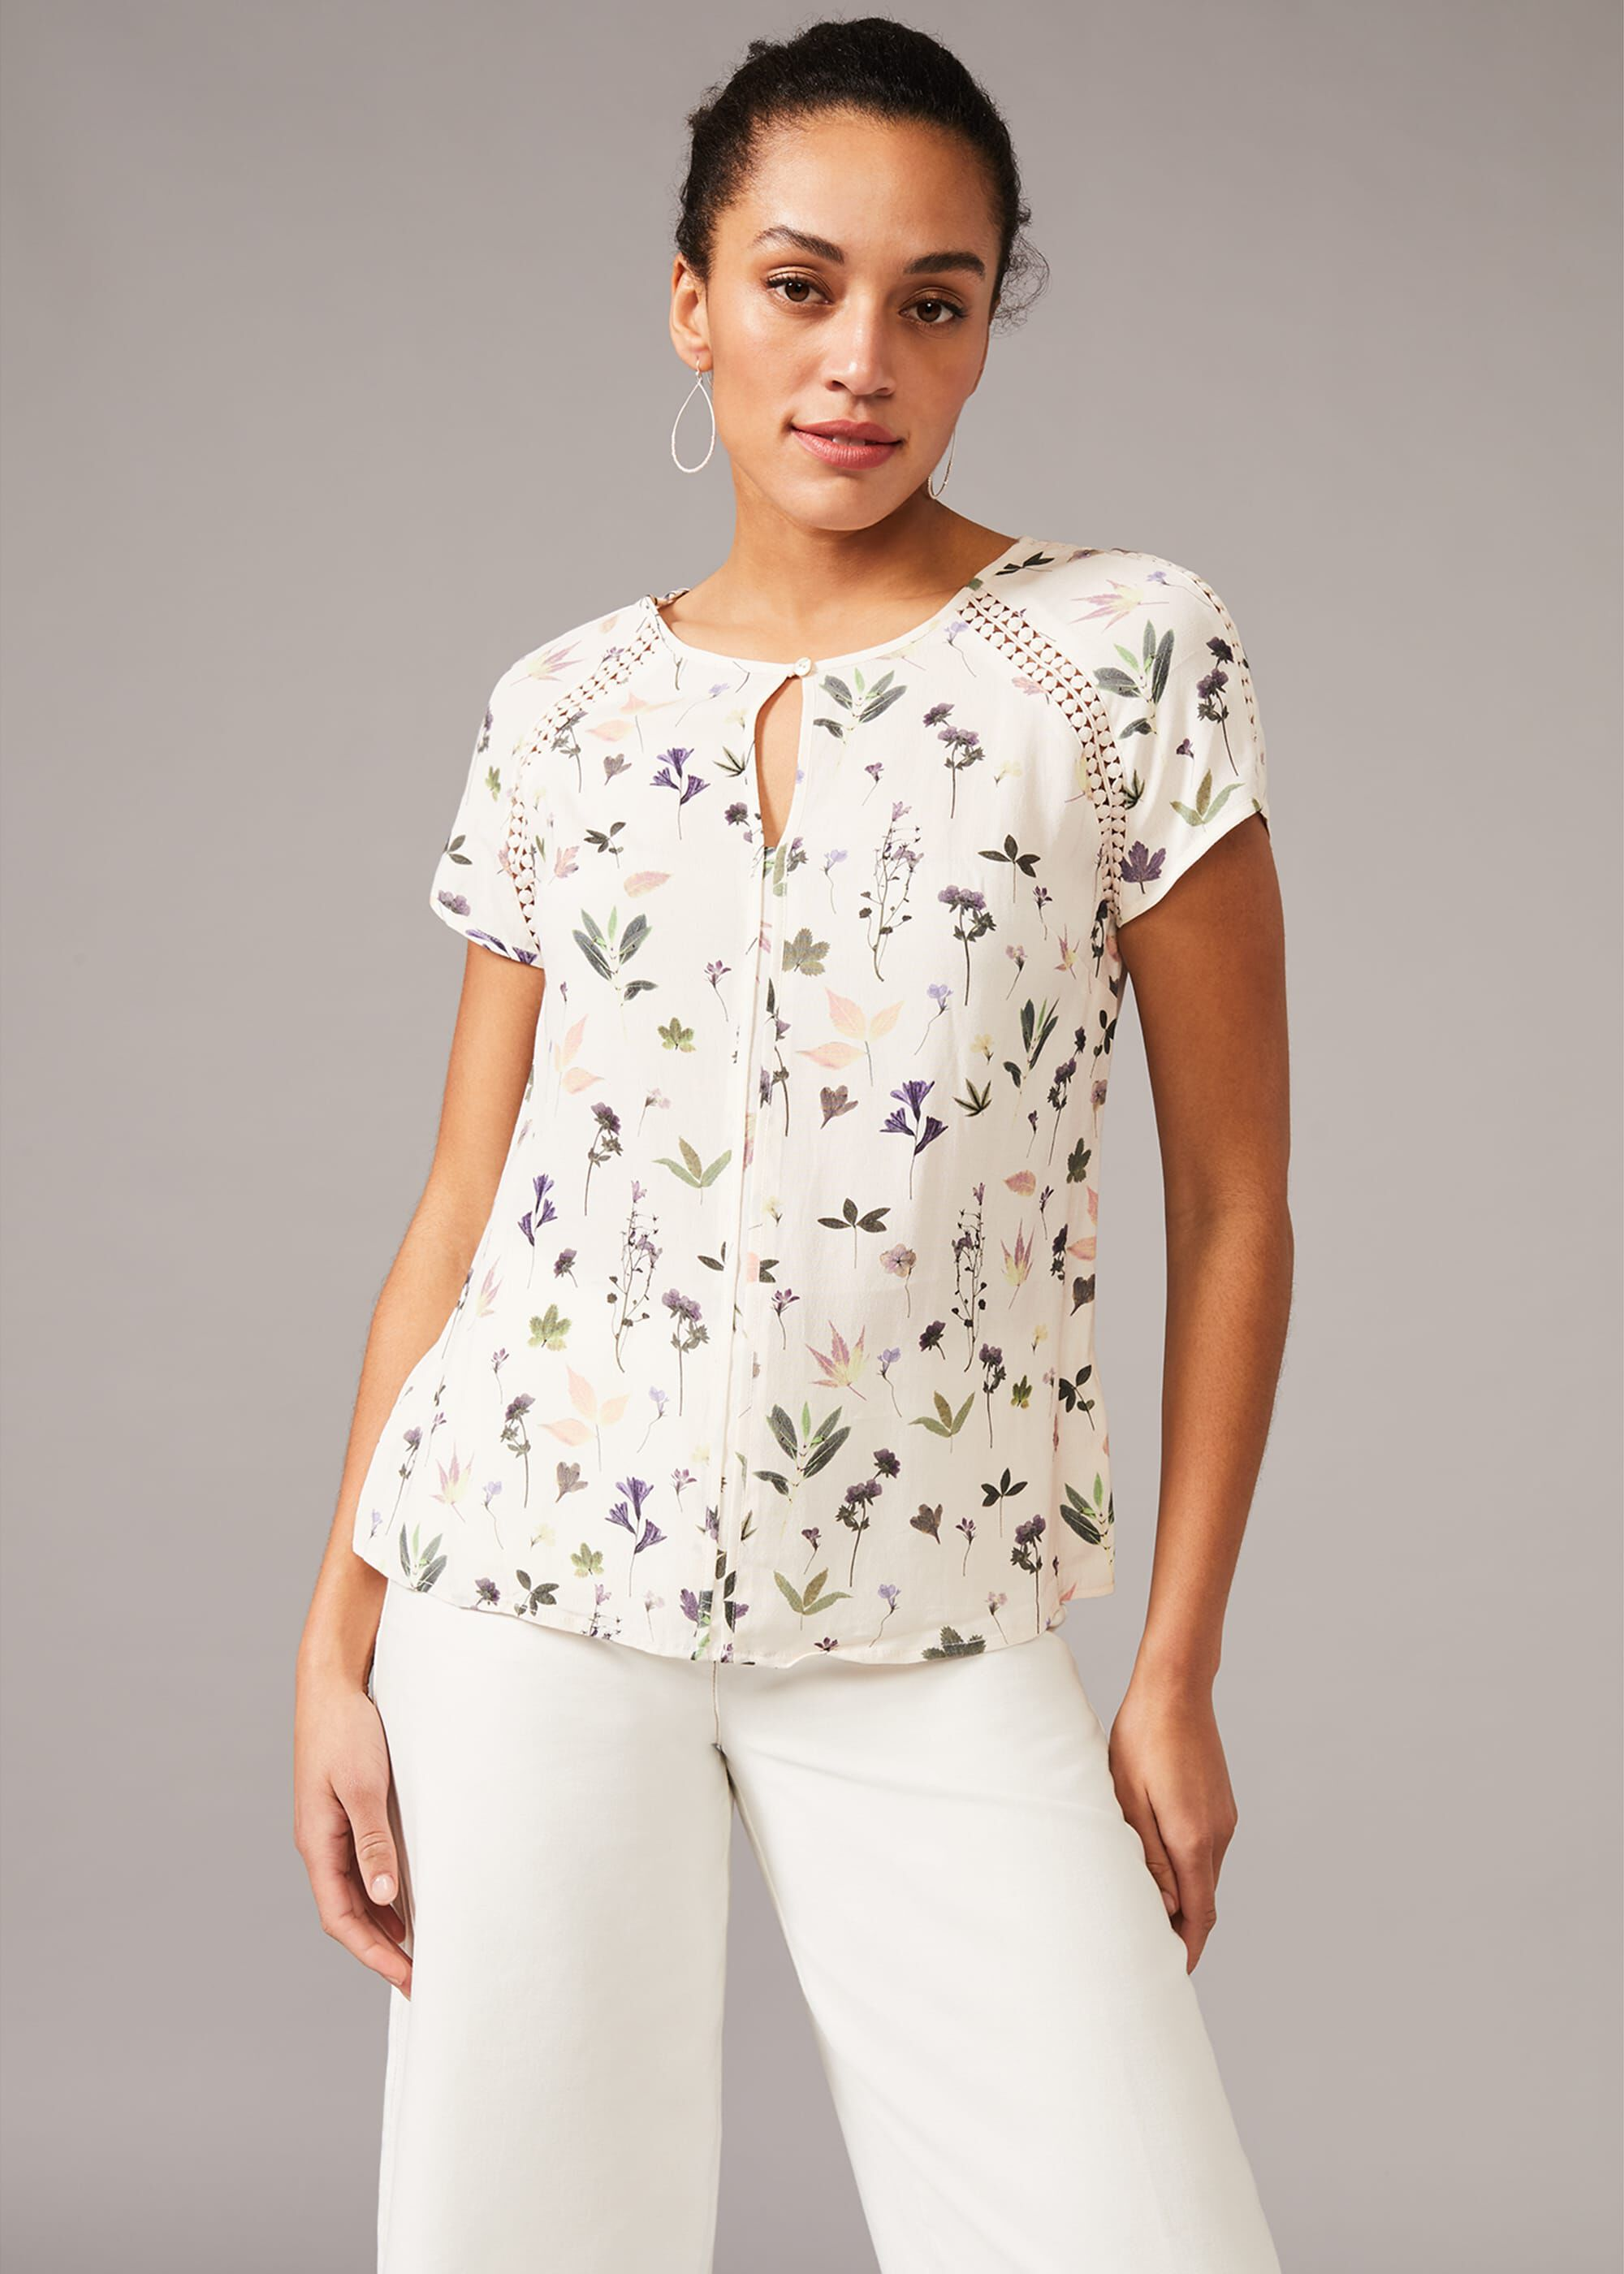 Phase Eight Cleo Floral Blouse, White, Blouse